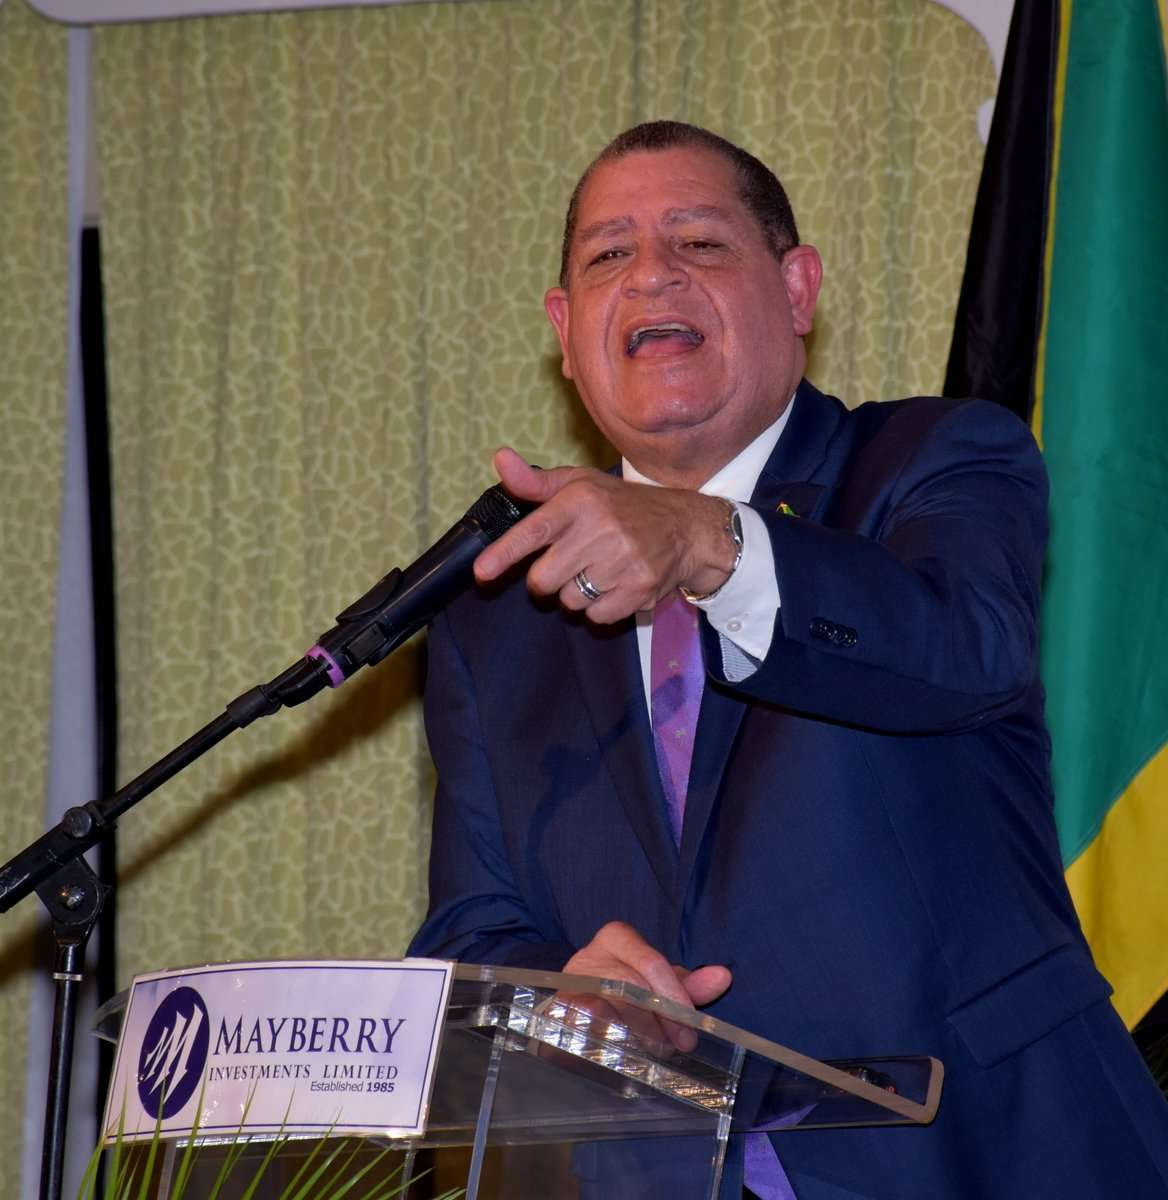 'PNP Playing Politics' with Used Car Scandal, says Shaw